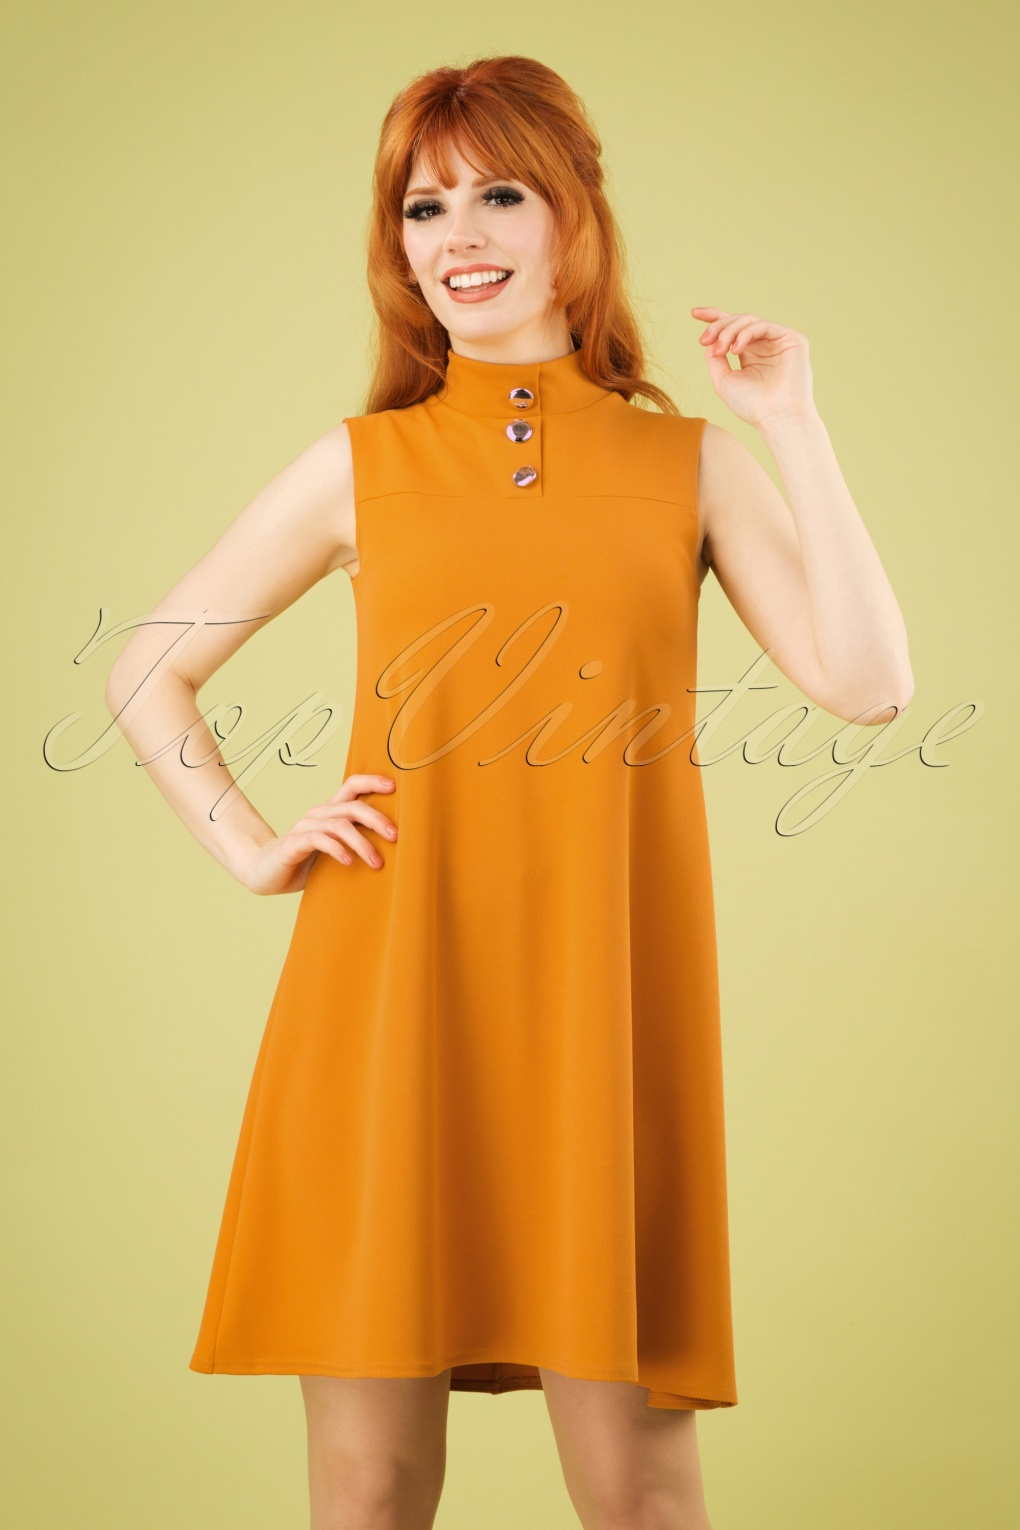 500 Vintage Style Dresses for Sale | Vintage Inspired Dresses 60s Jean A-Line Dress in Mustard £43.83 AT vintagedancer.com